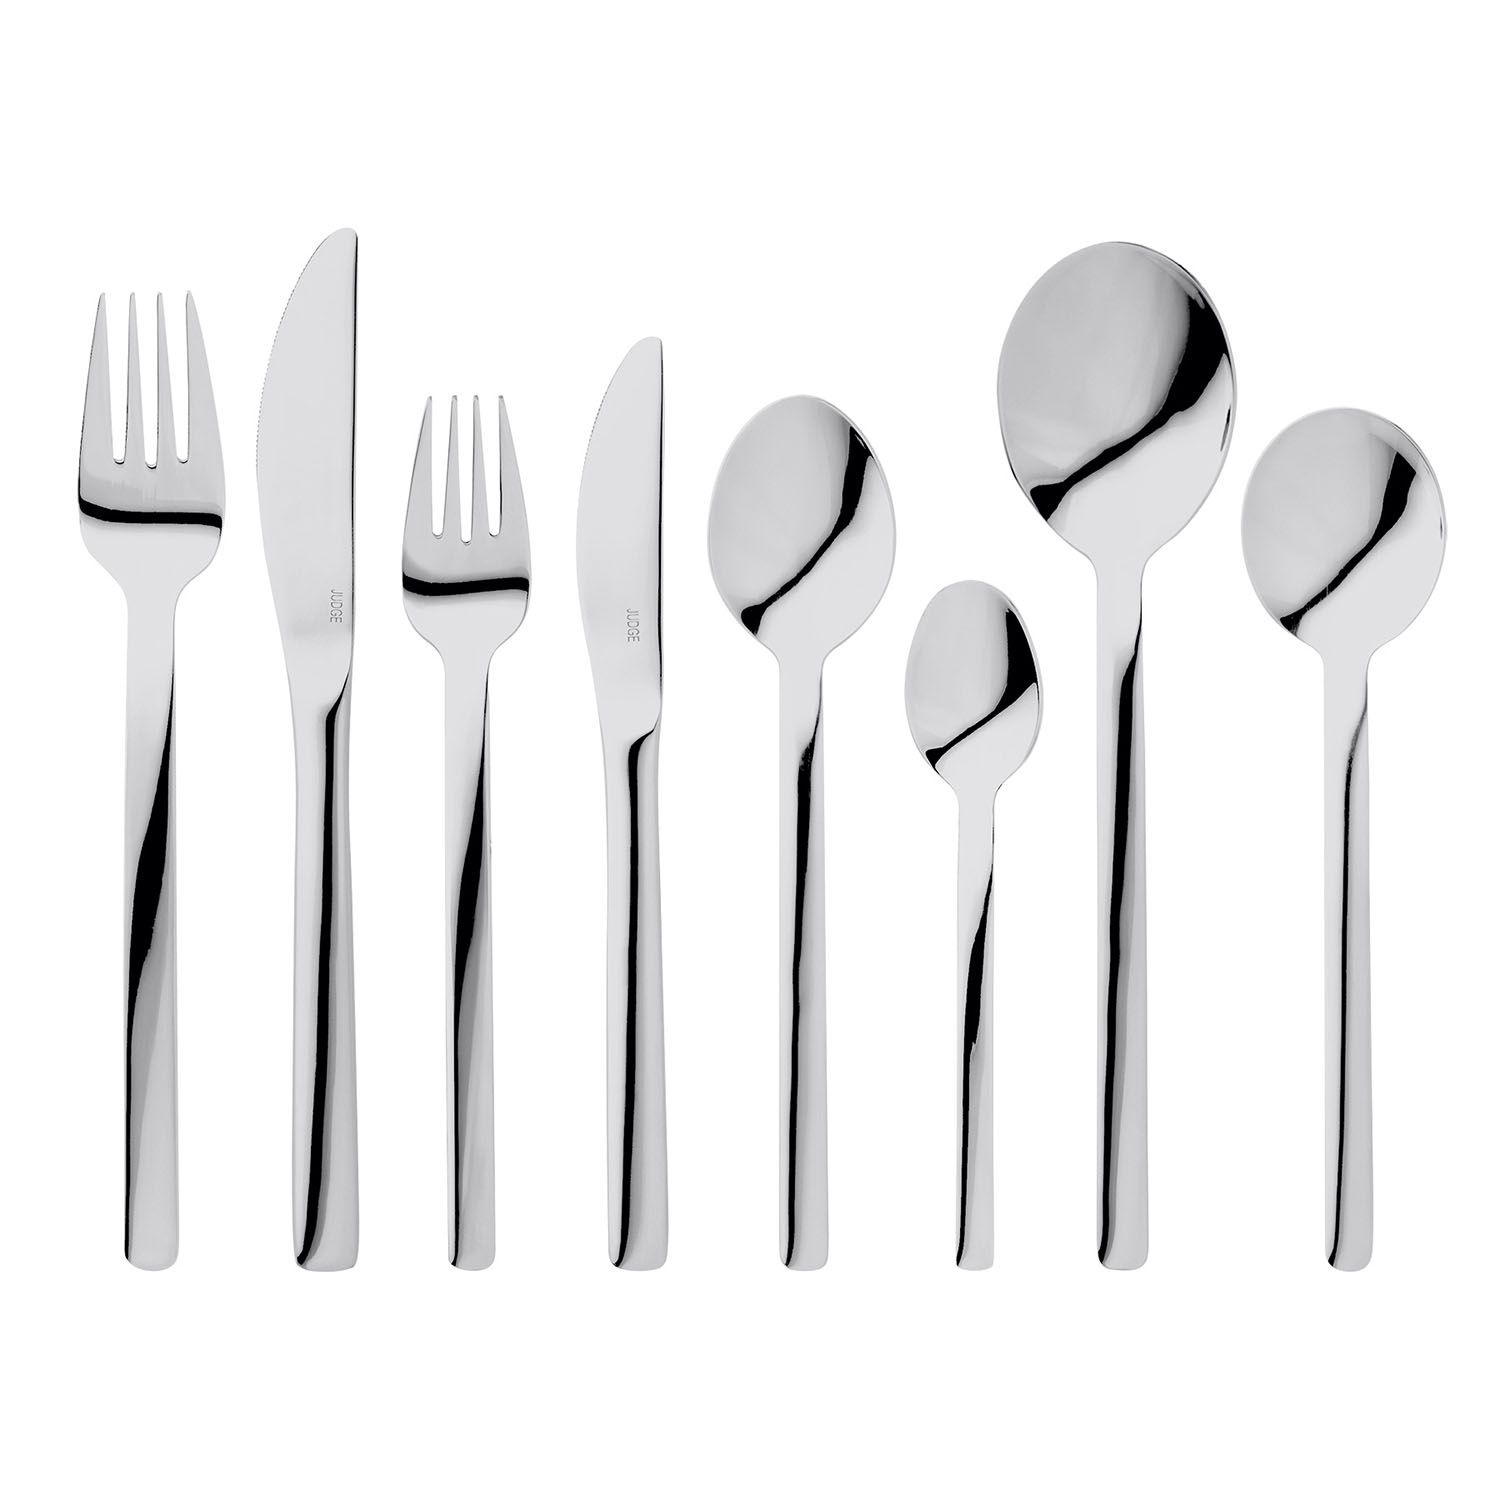 Image of Judge Windsor Stainless Steel 58 Piece Cutlery Set